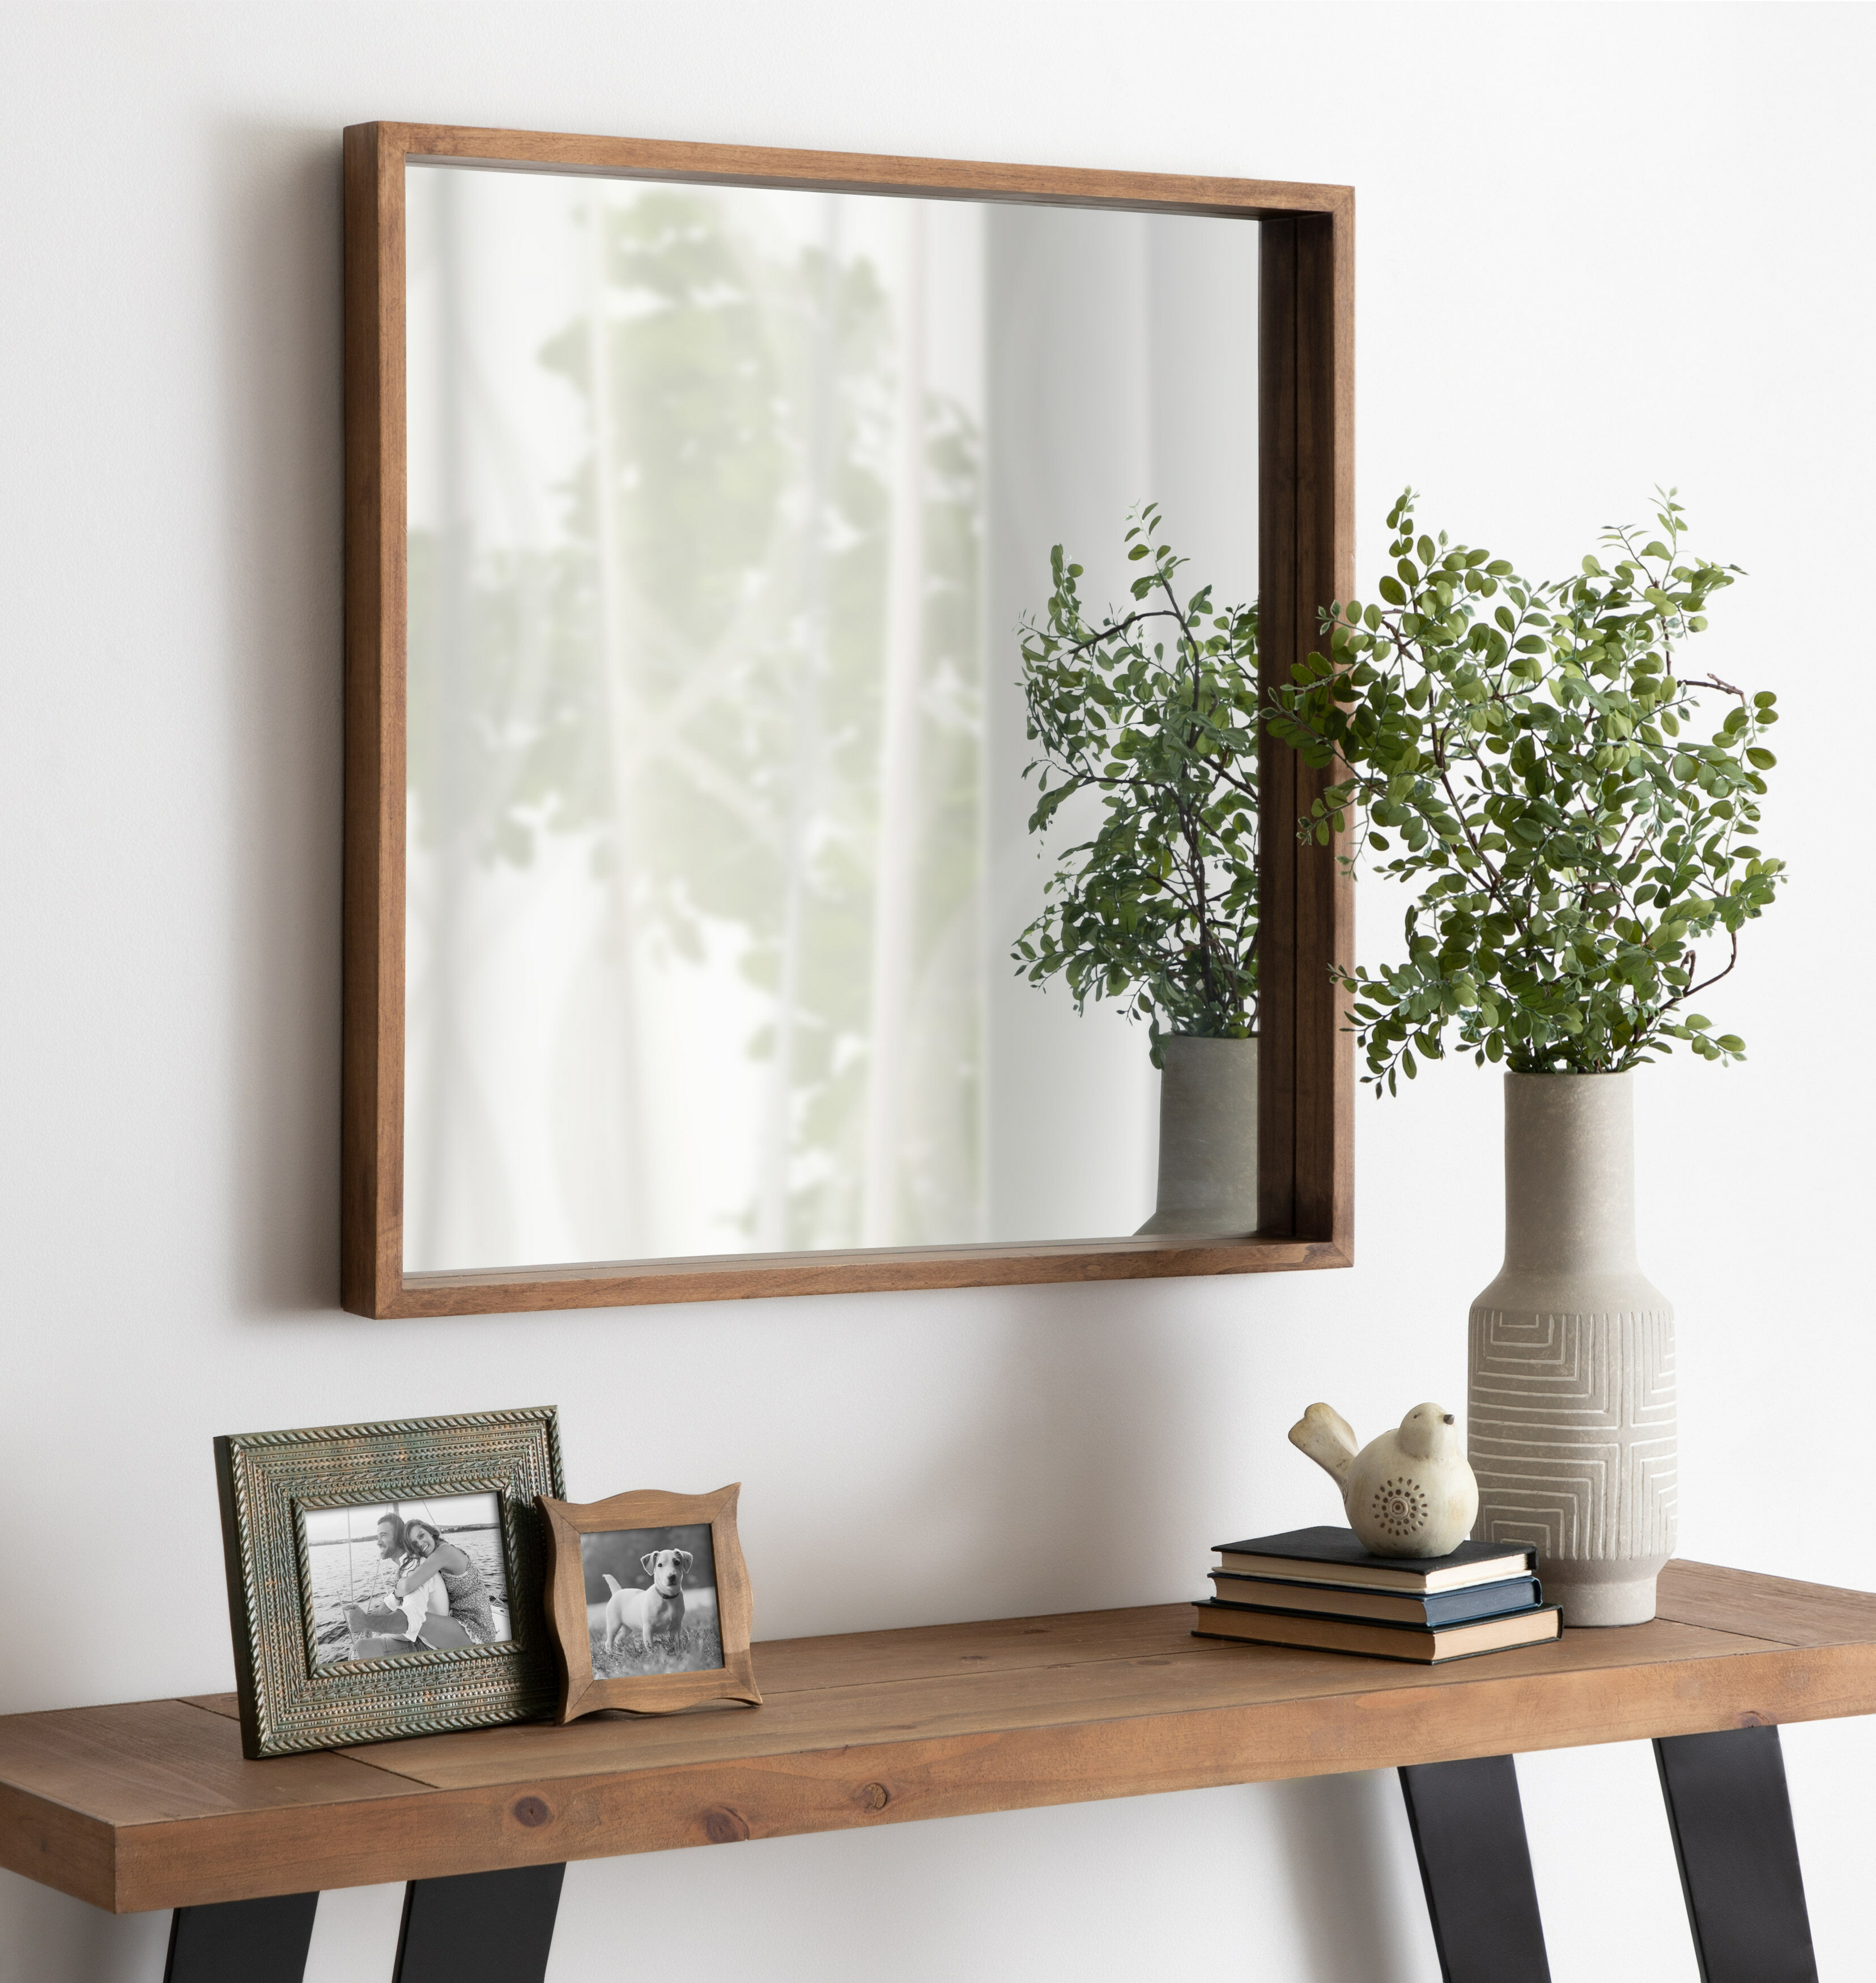 Ebern Designs Agapi Coastal Beveled Accent Mirror Wayfair